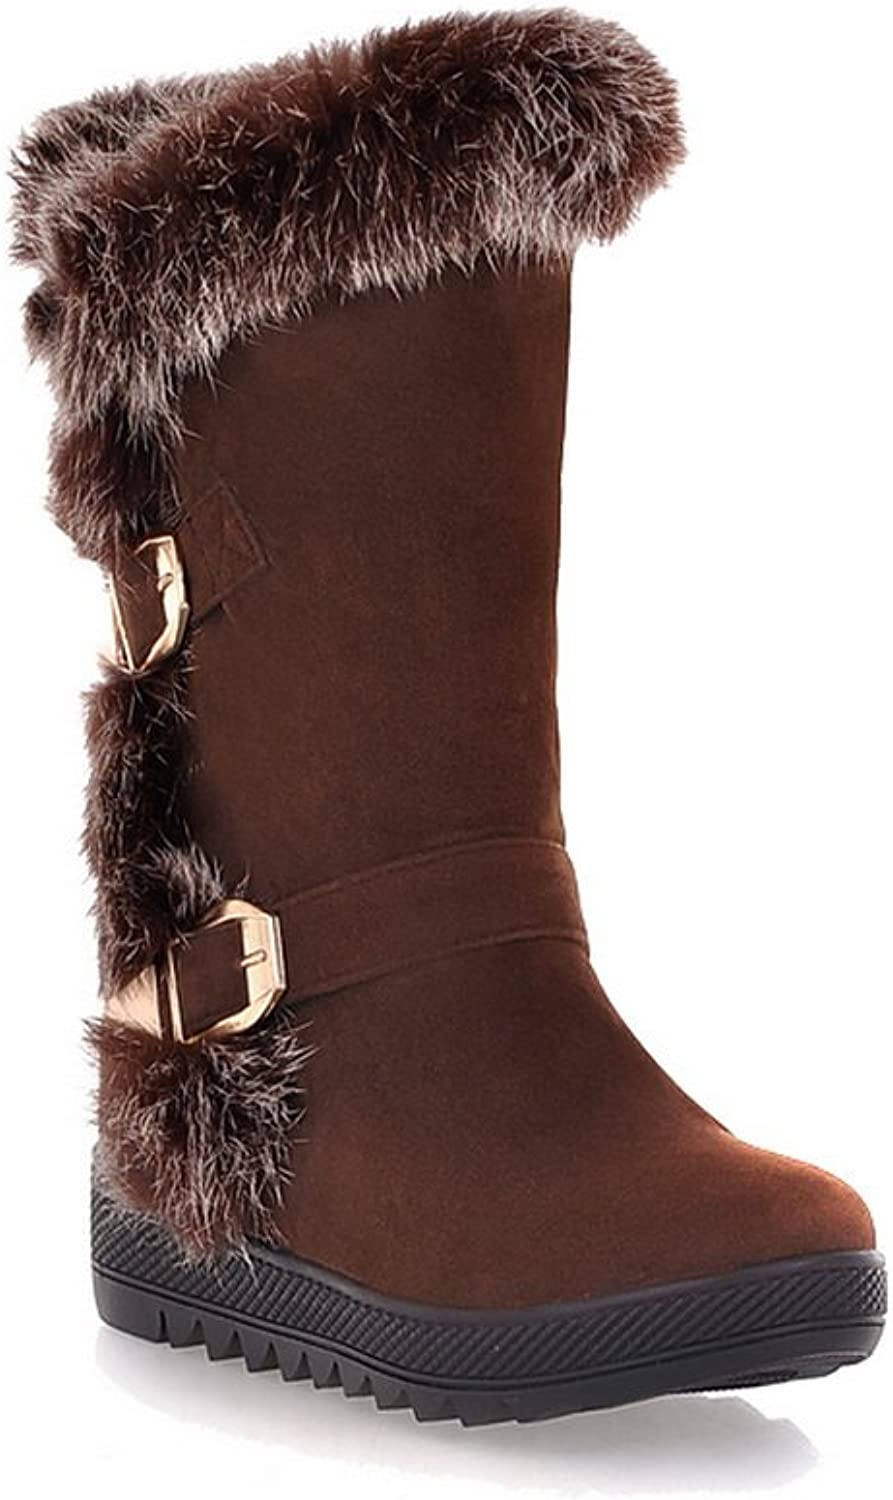 1TO9 Ladies Fur Ornament Buckle Platform Frosted Boots